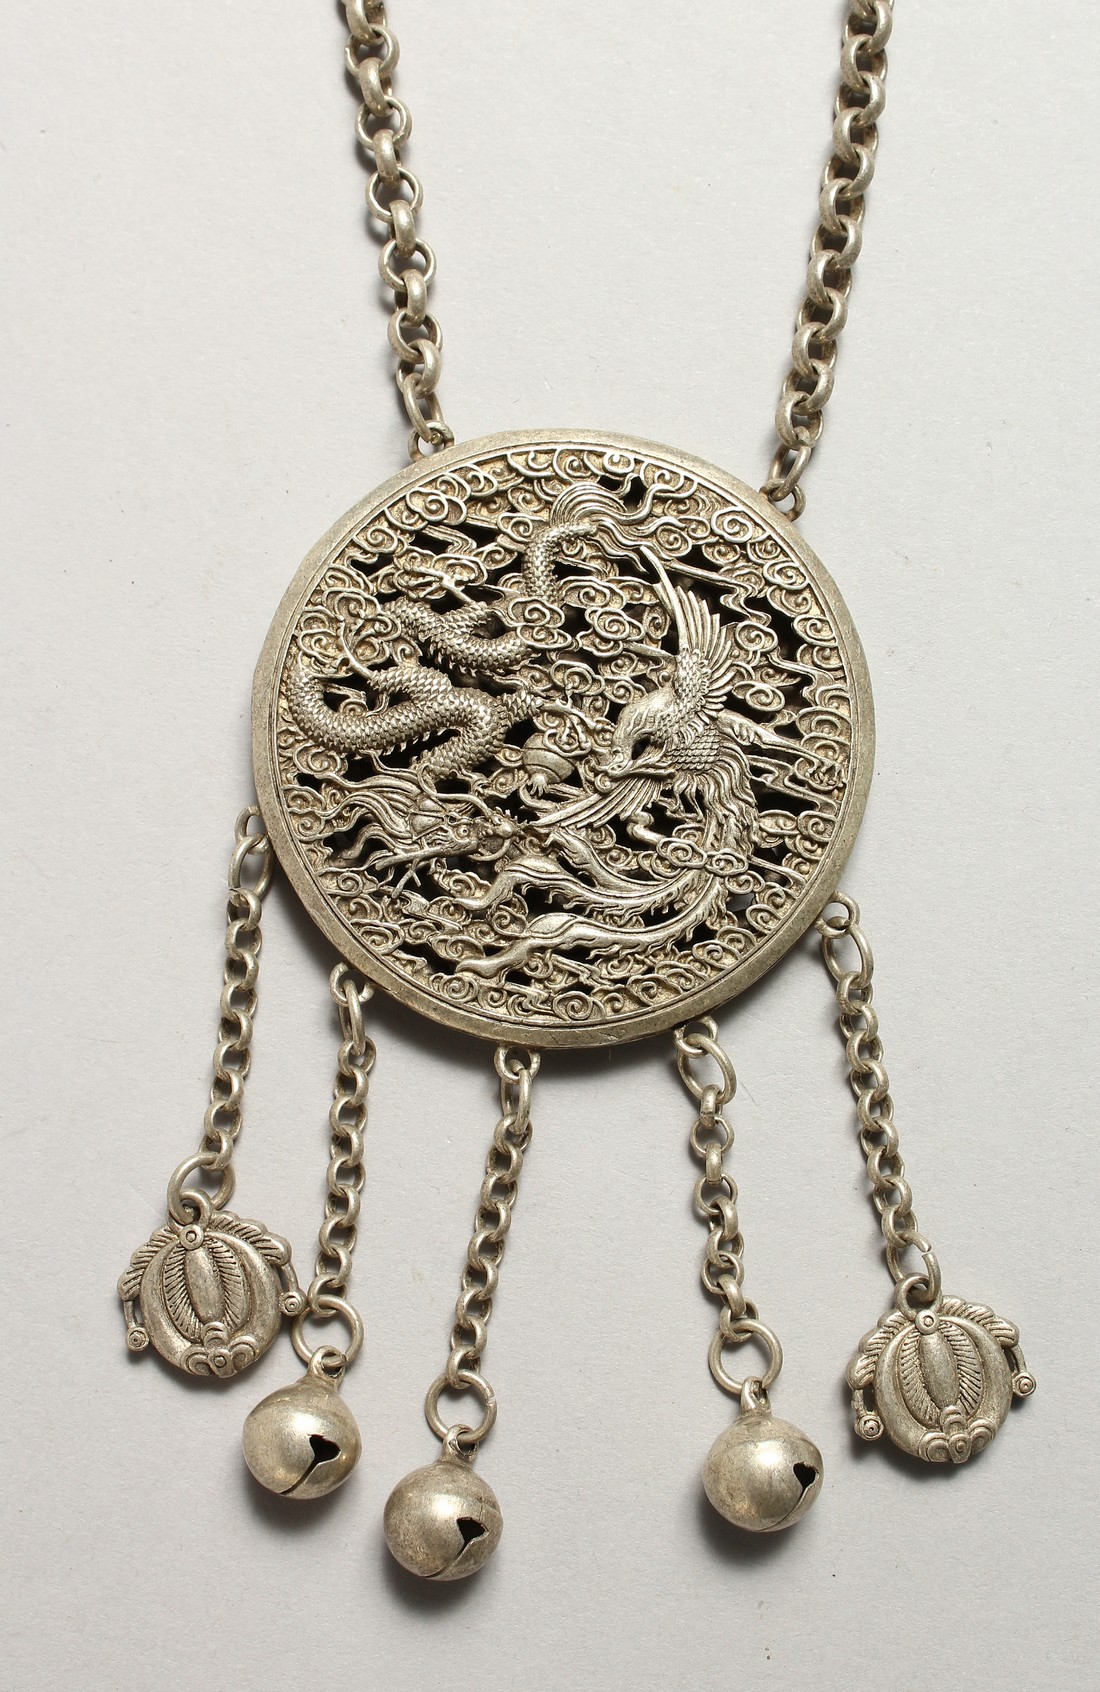 A CHINESE SILVER YIN-YANG PENDANT on a chain with dragon and phoenix.